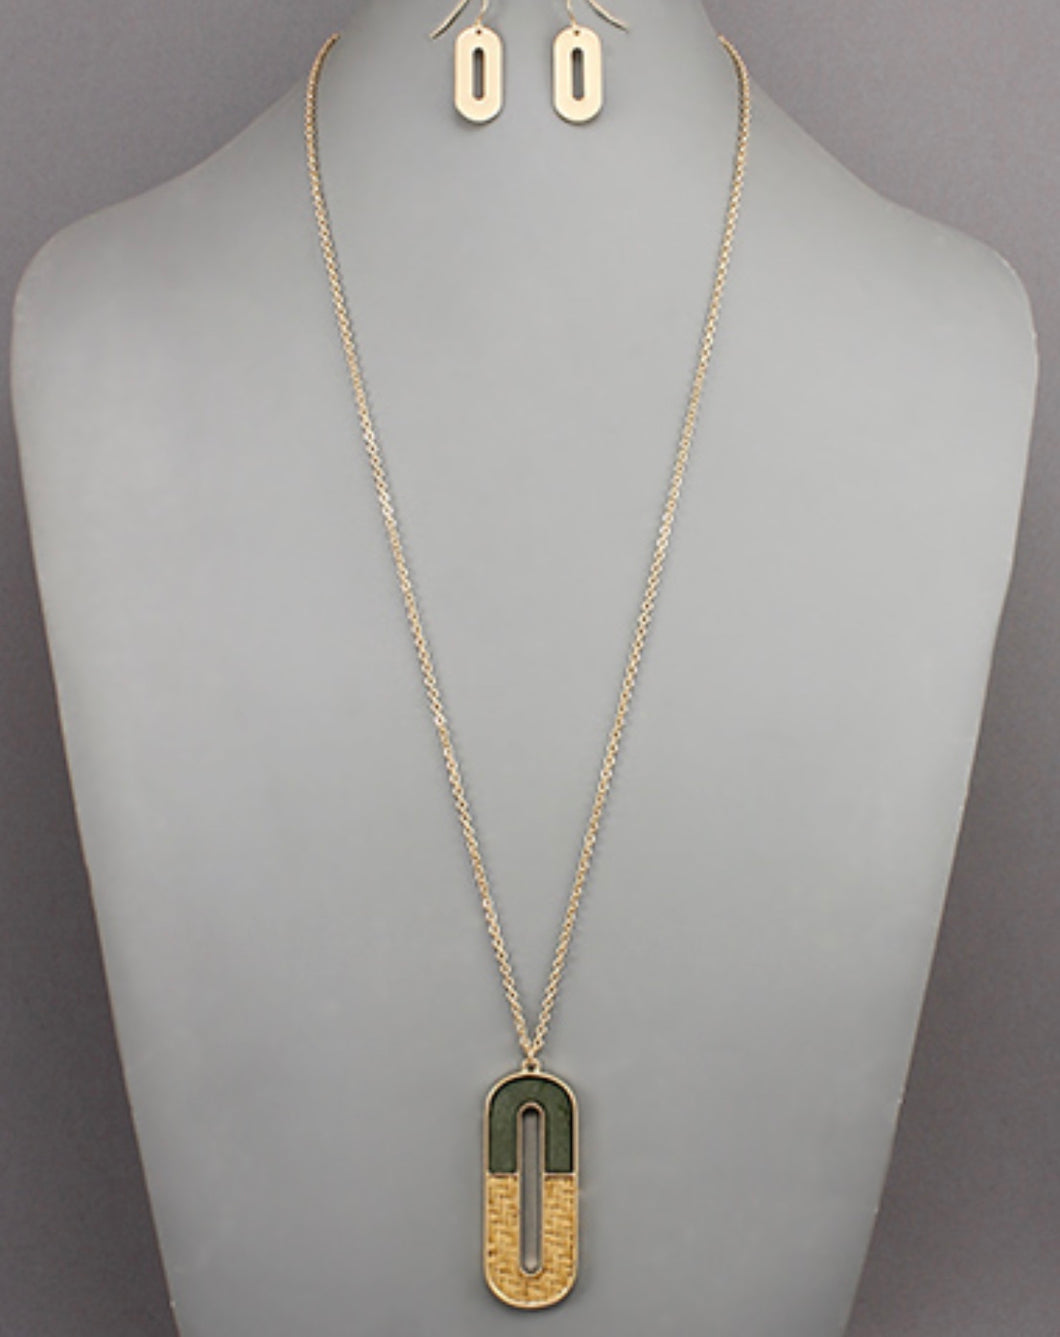 Olive & Wood Oval Necklace